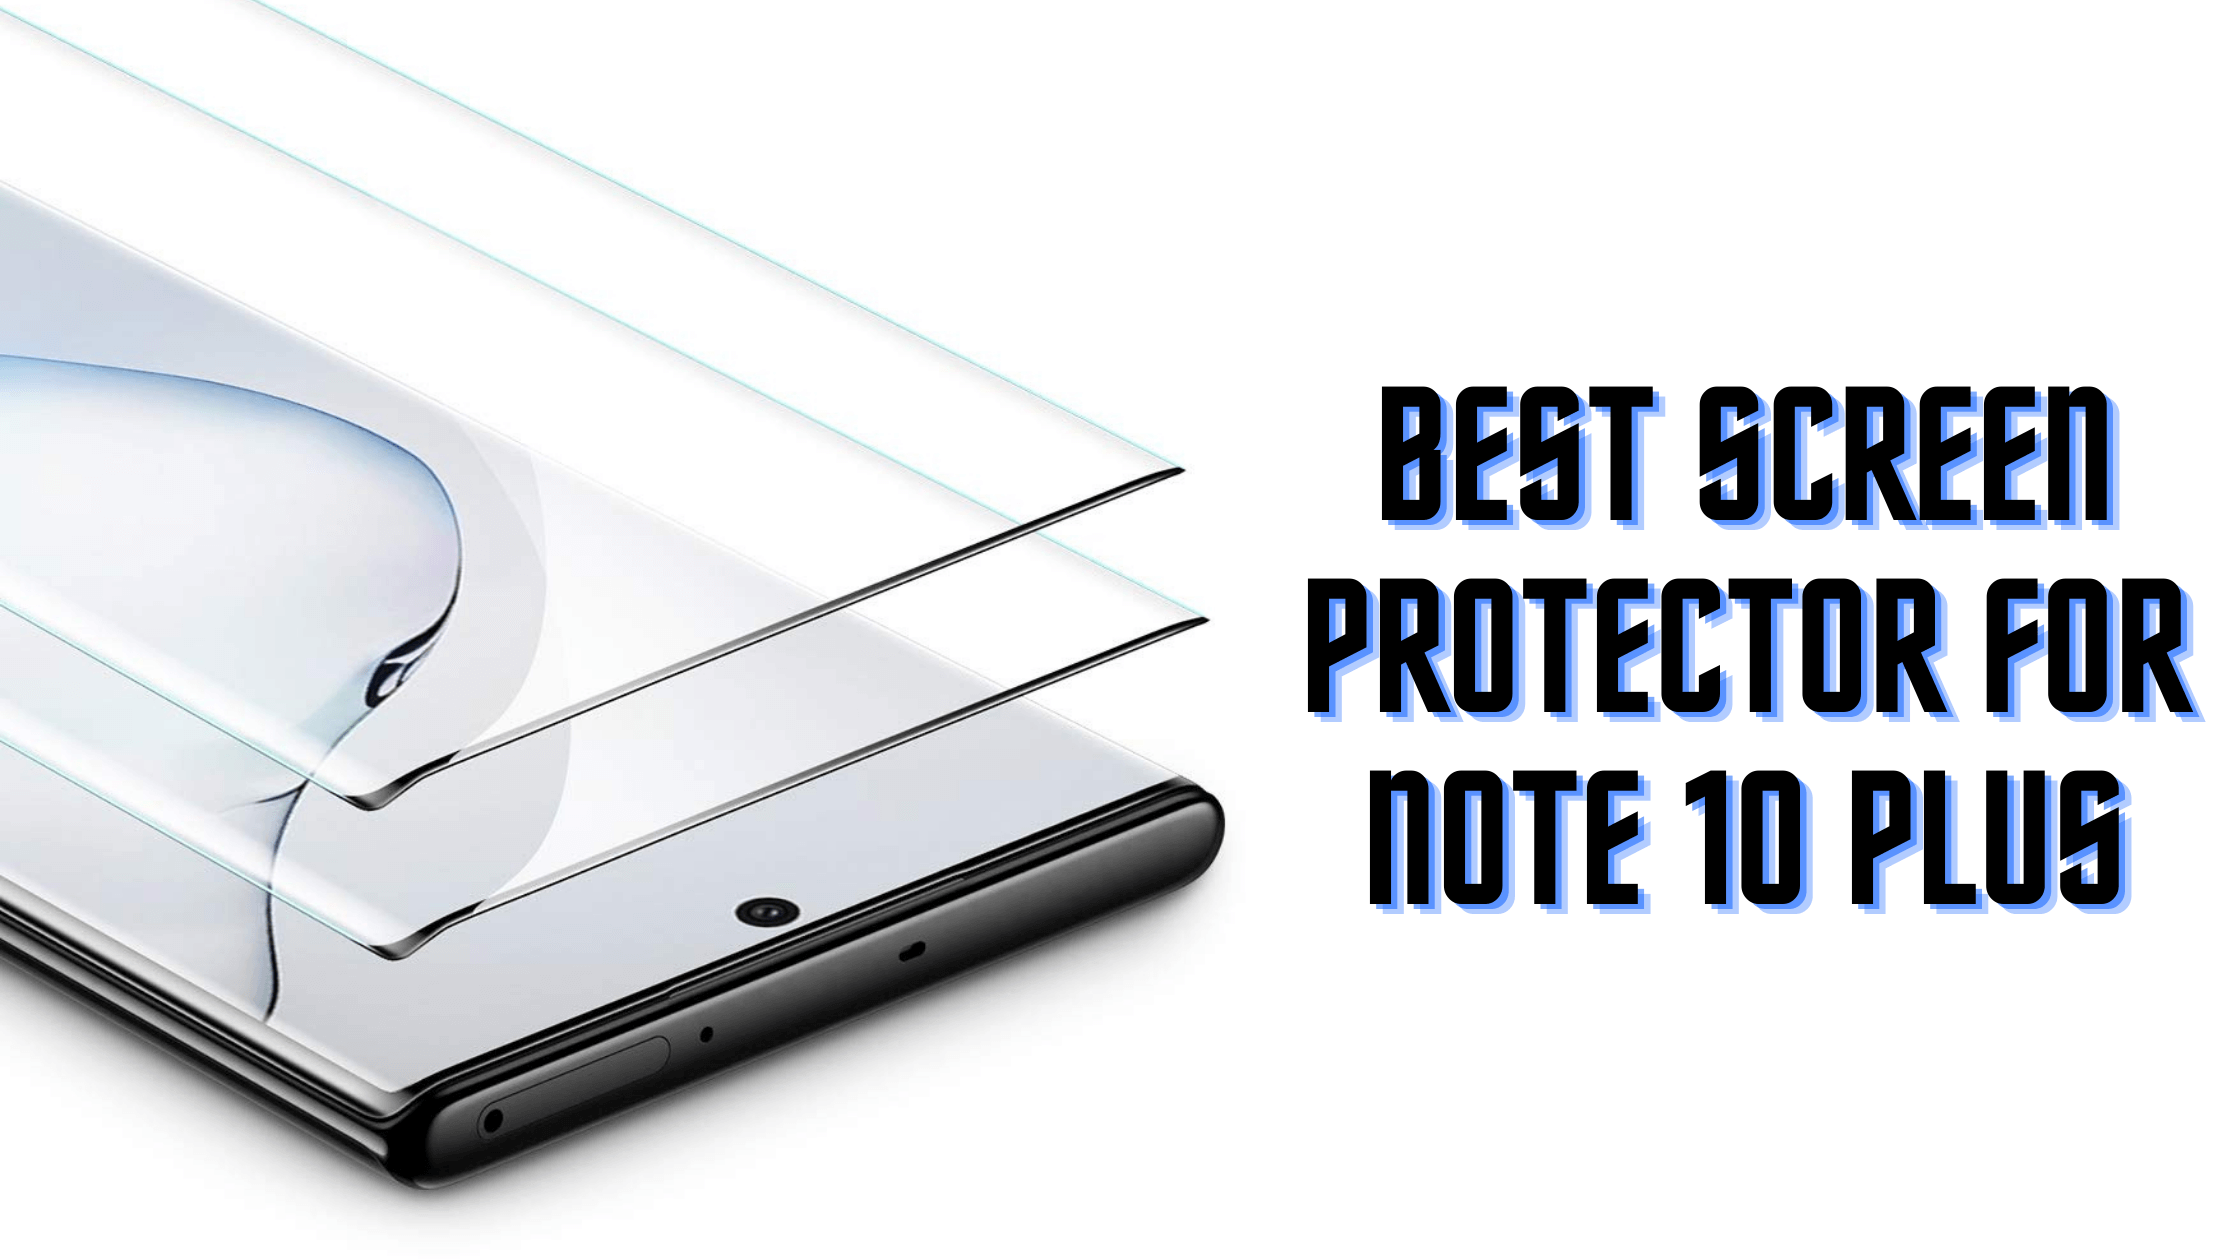 Best Screen Protector For Note 10 Plus